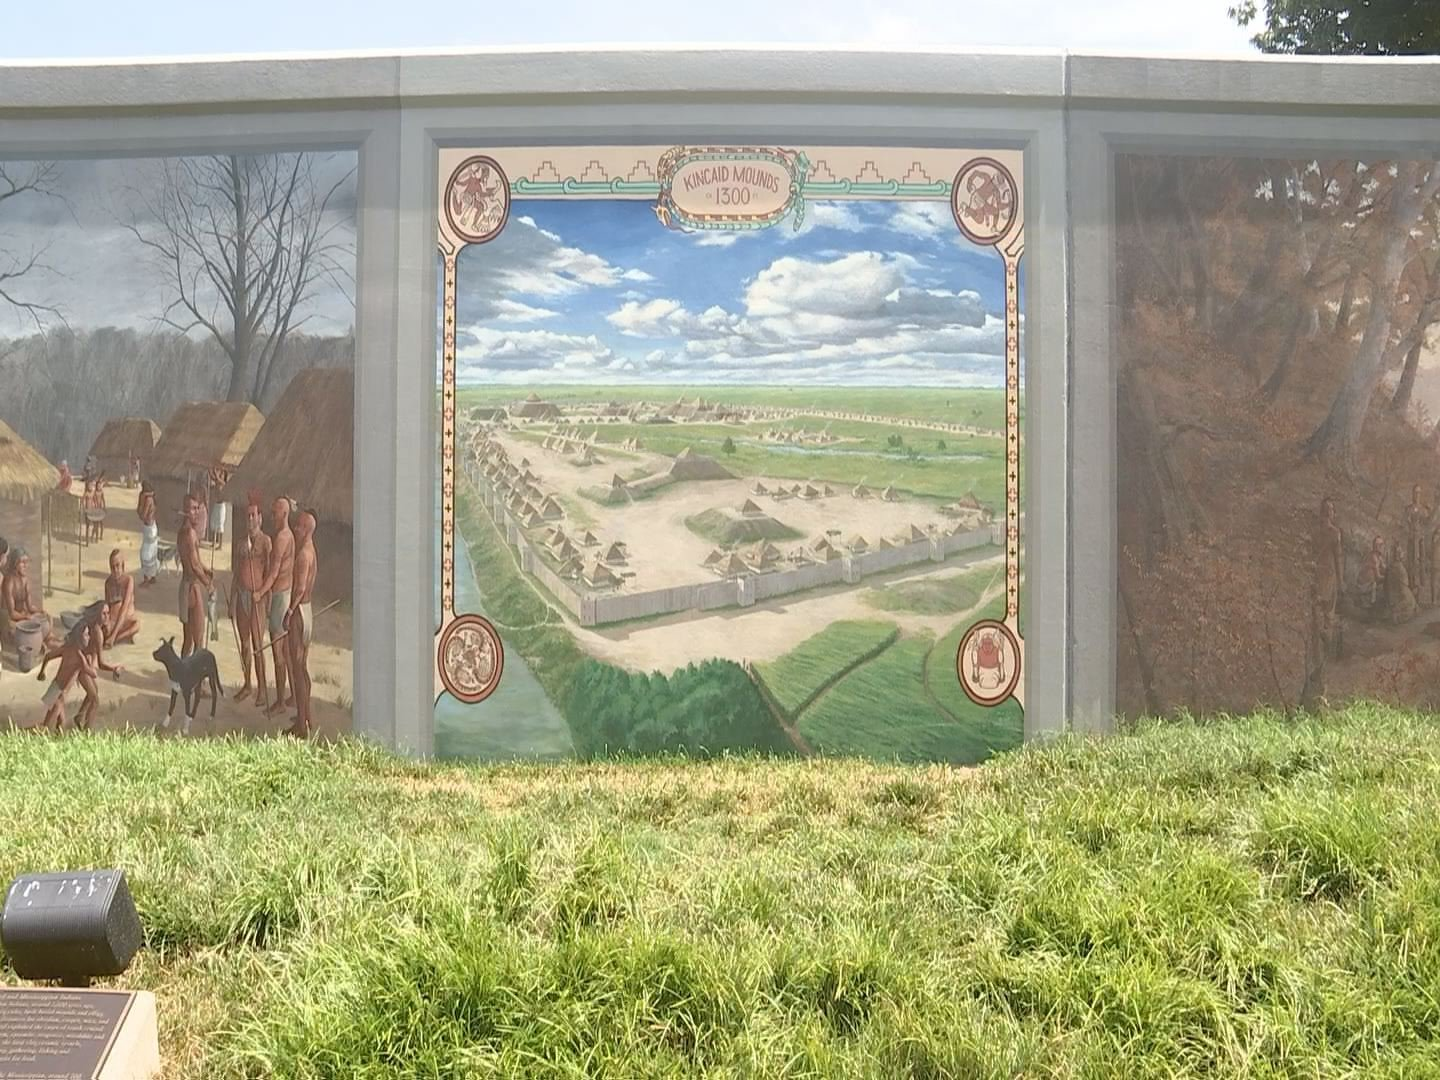 Check out the Kincaid Mounds mural! It has changed in the past week.